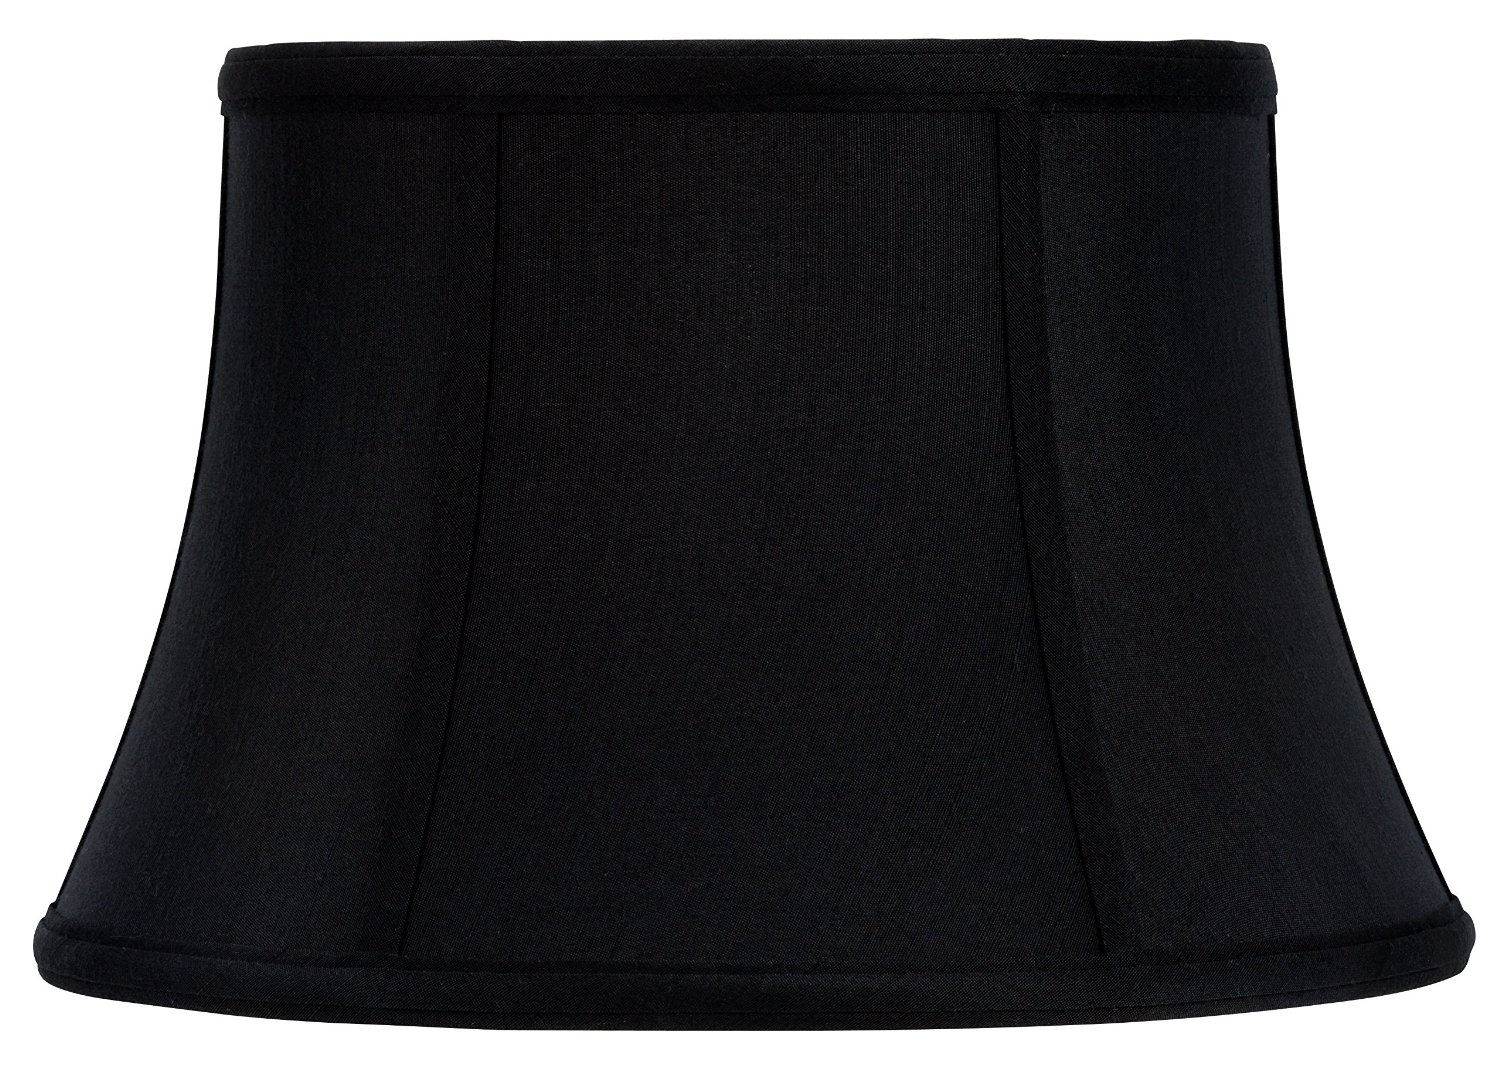 Upgradelights® 12 Inch Modified Bell Shaped Black Uno Silk Lamp Shades with Gold Lining